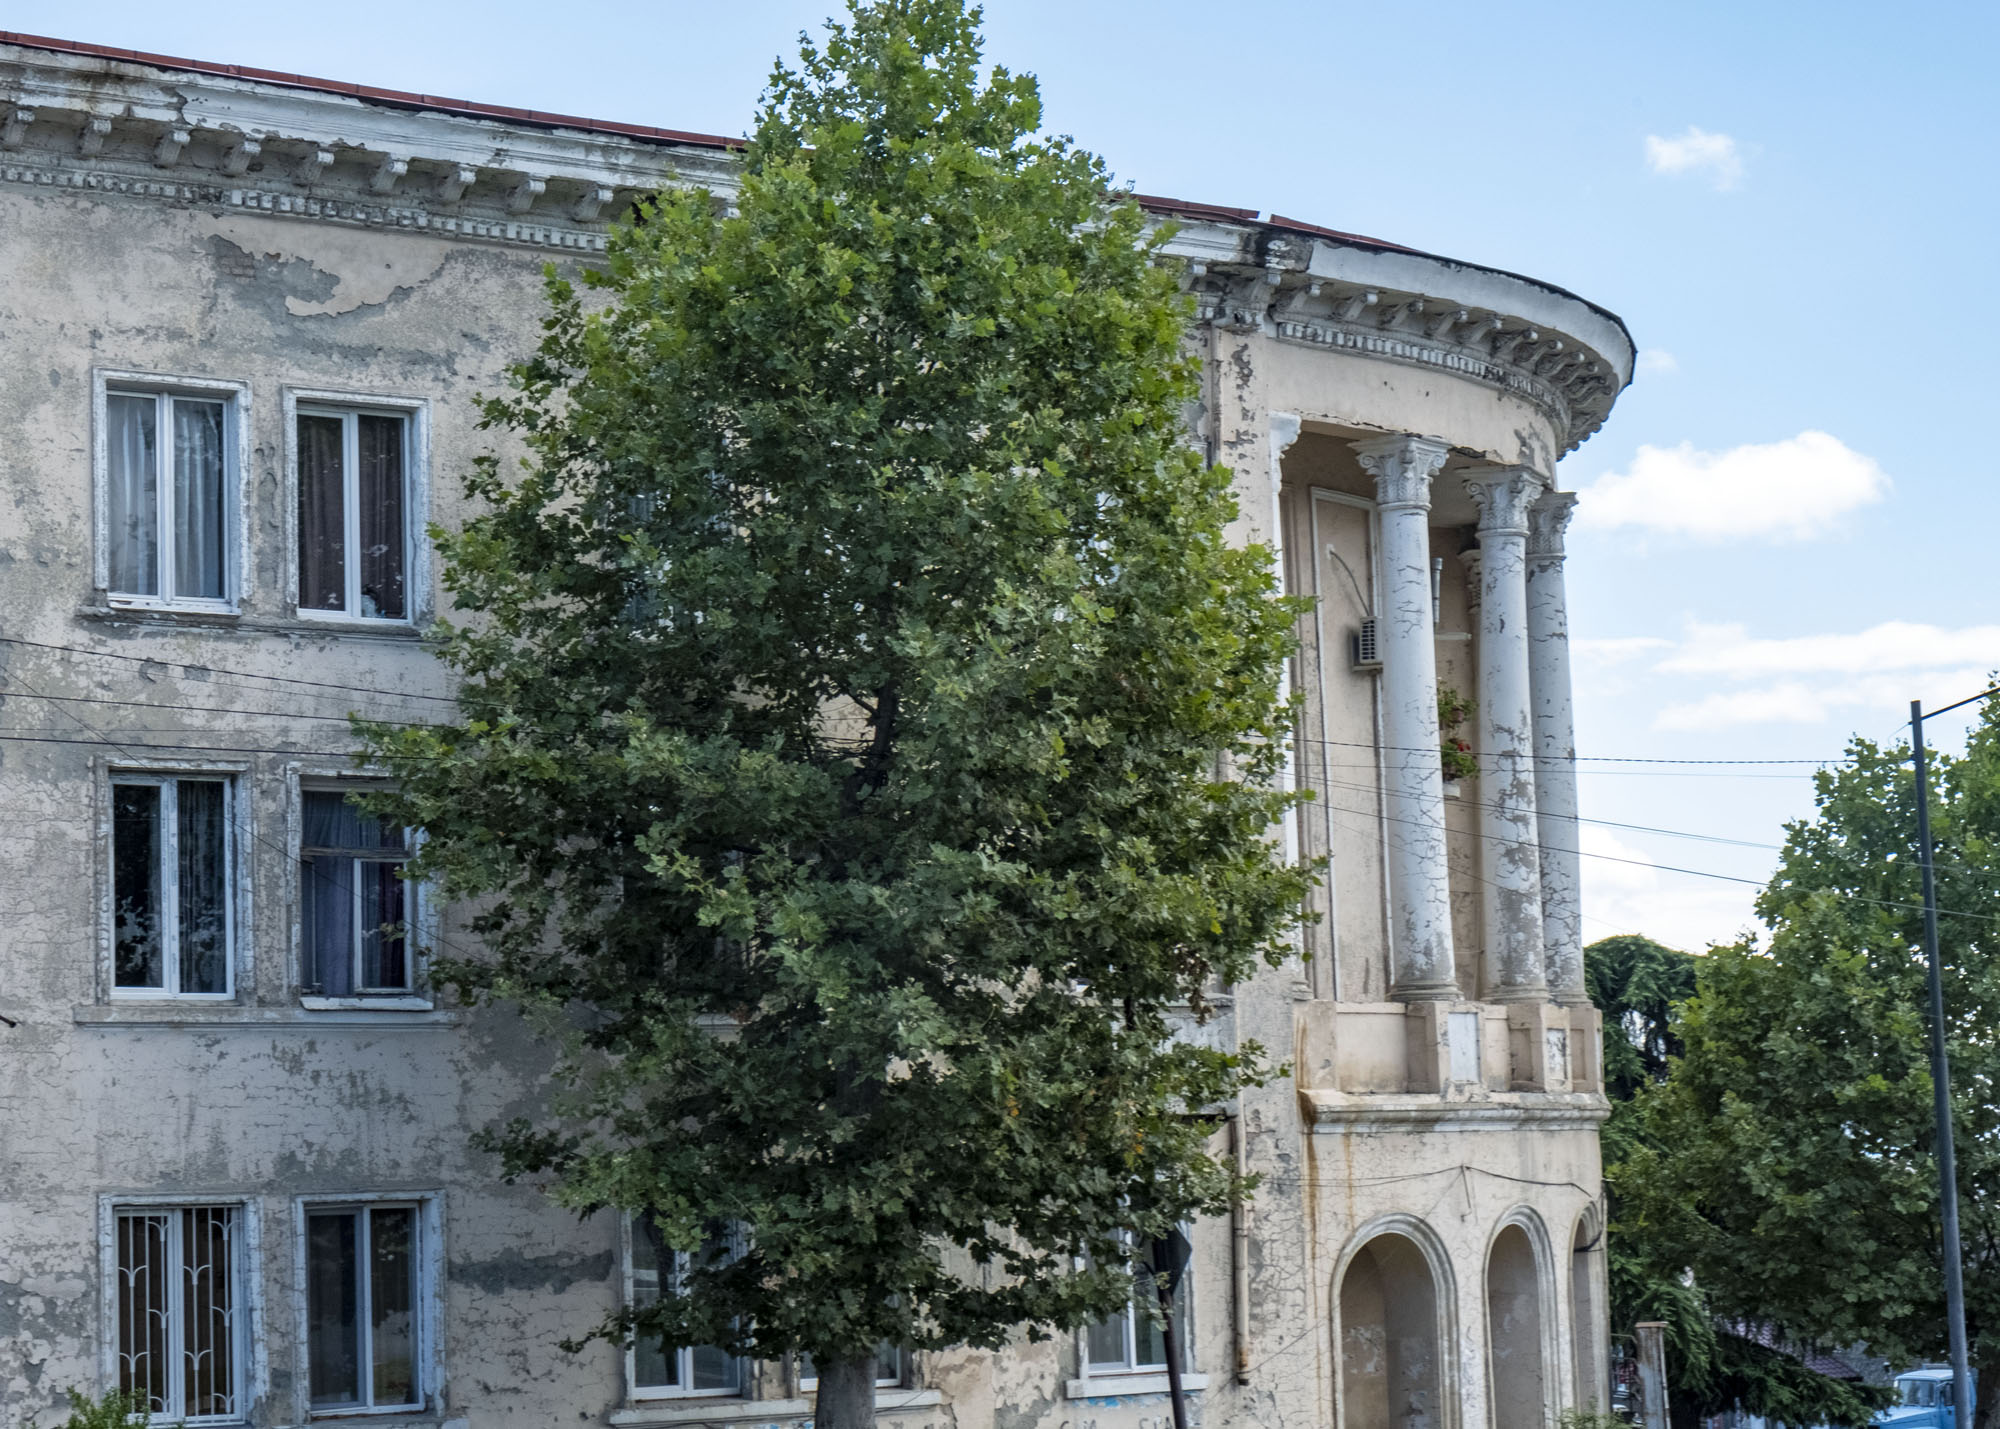 stalin era building with tree.jpg